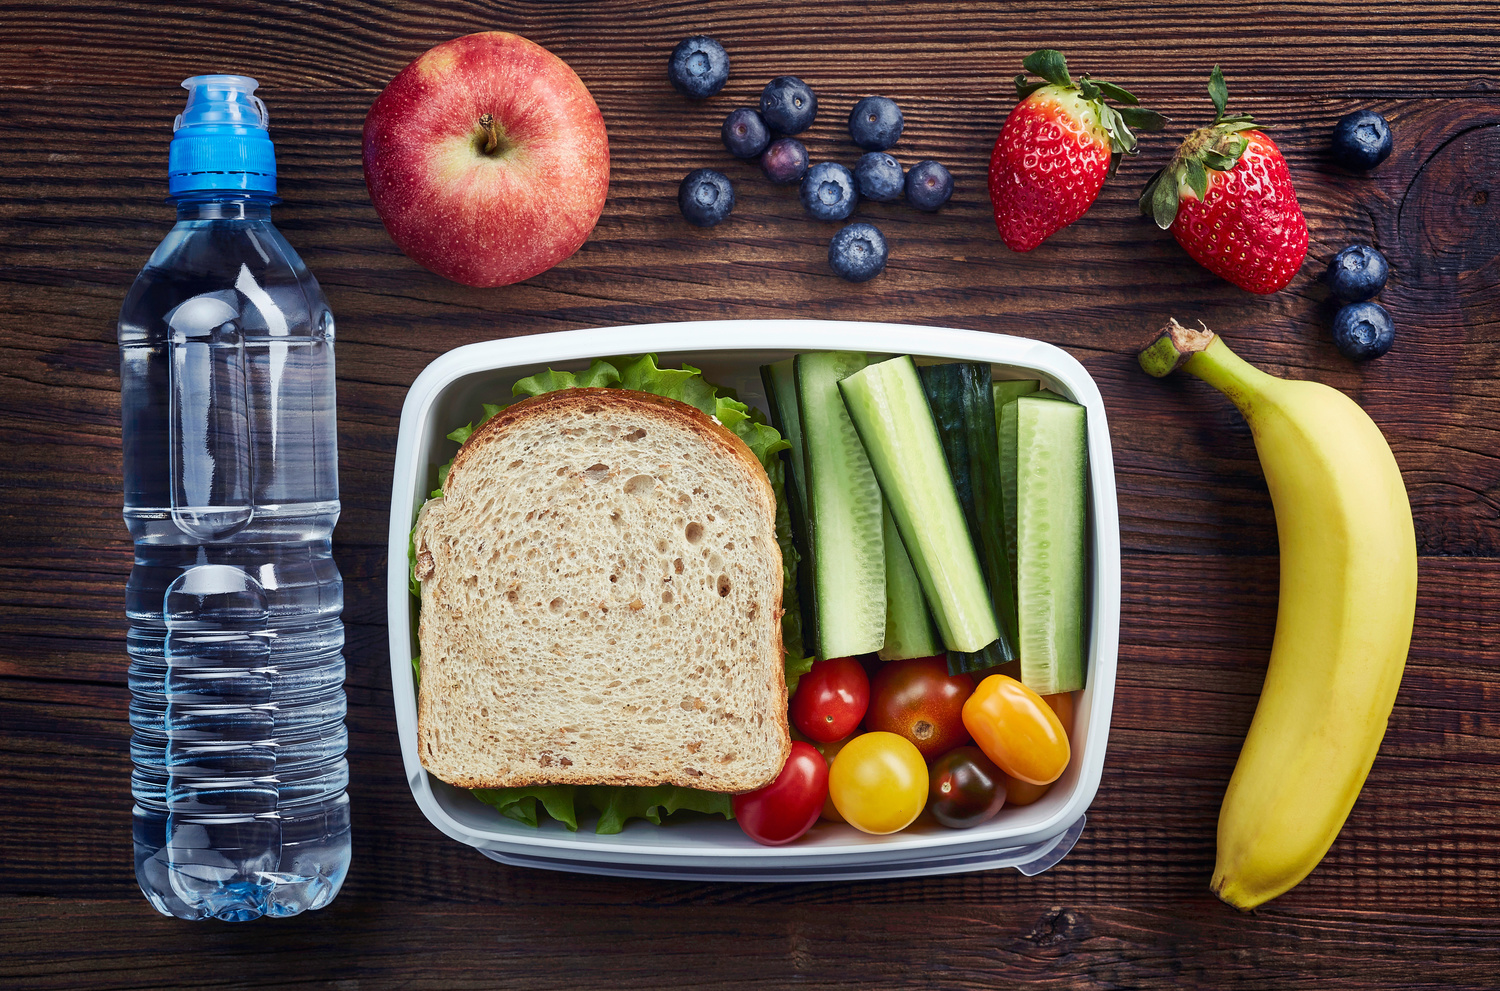 Help Your Child's Smile With Healthy School Lunches